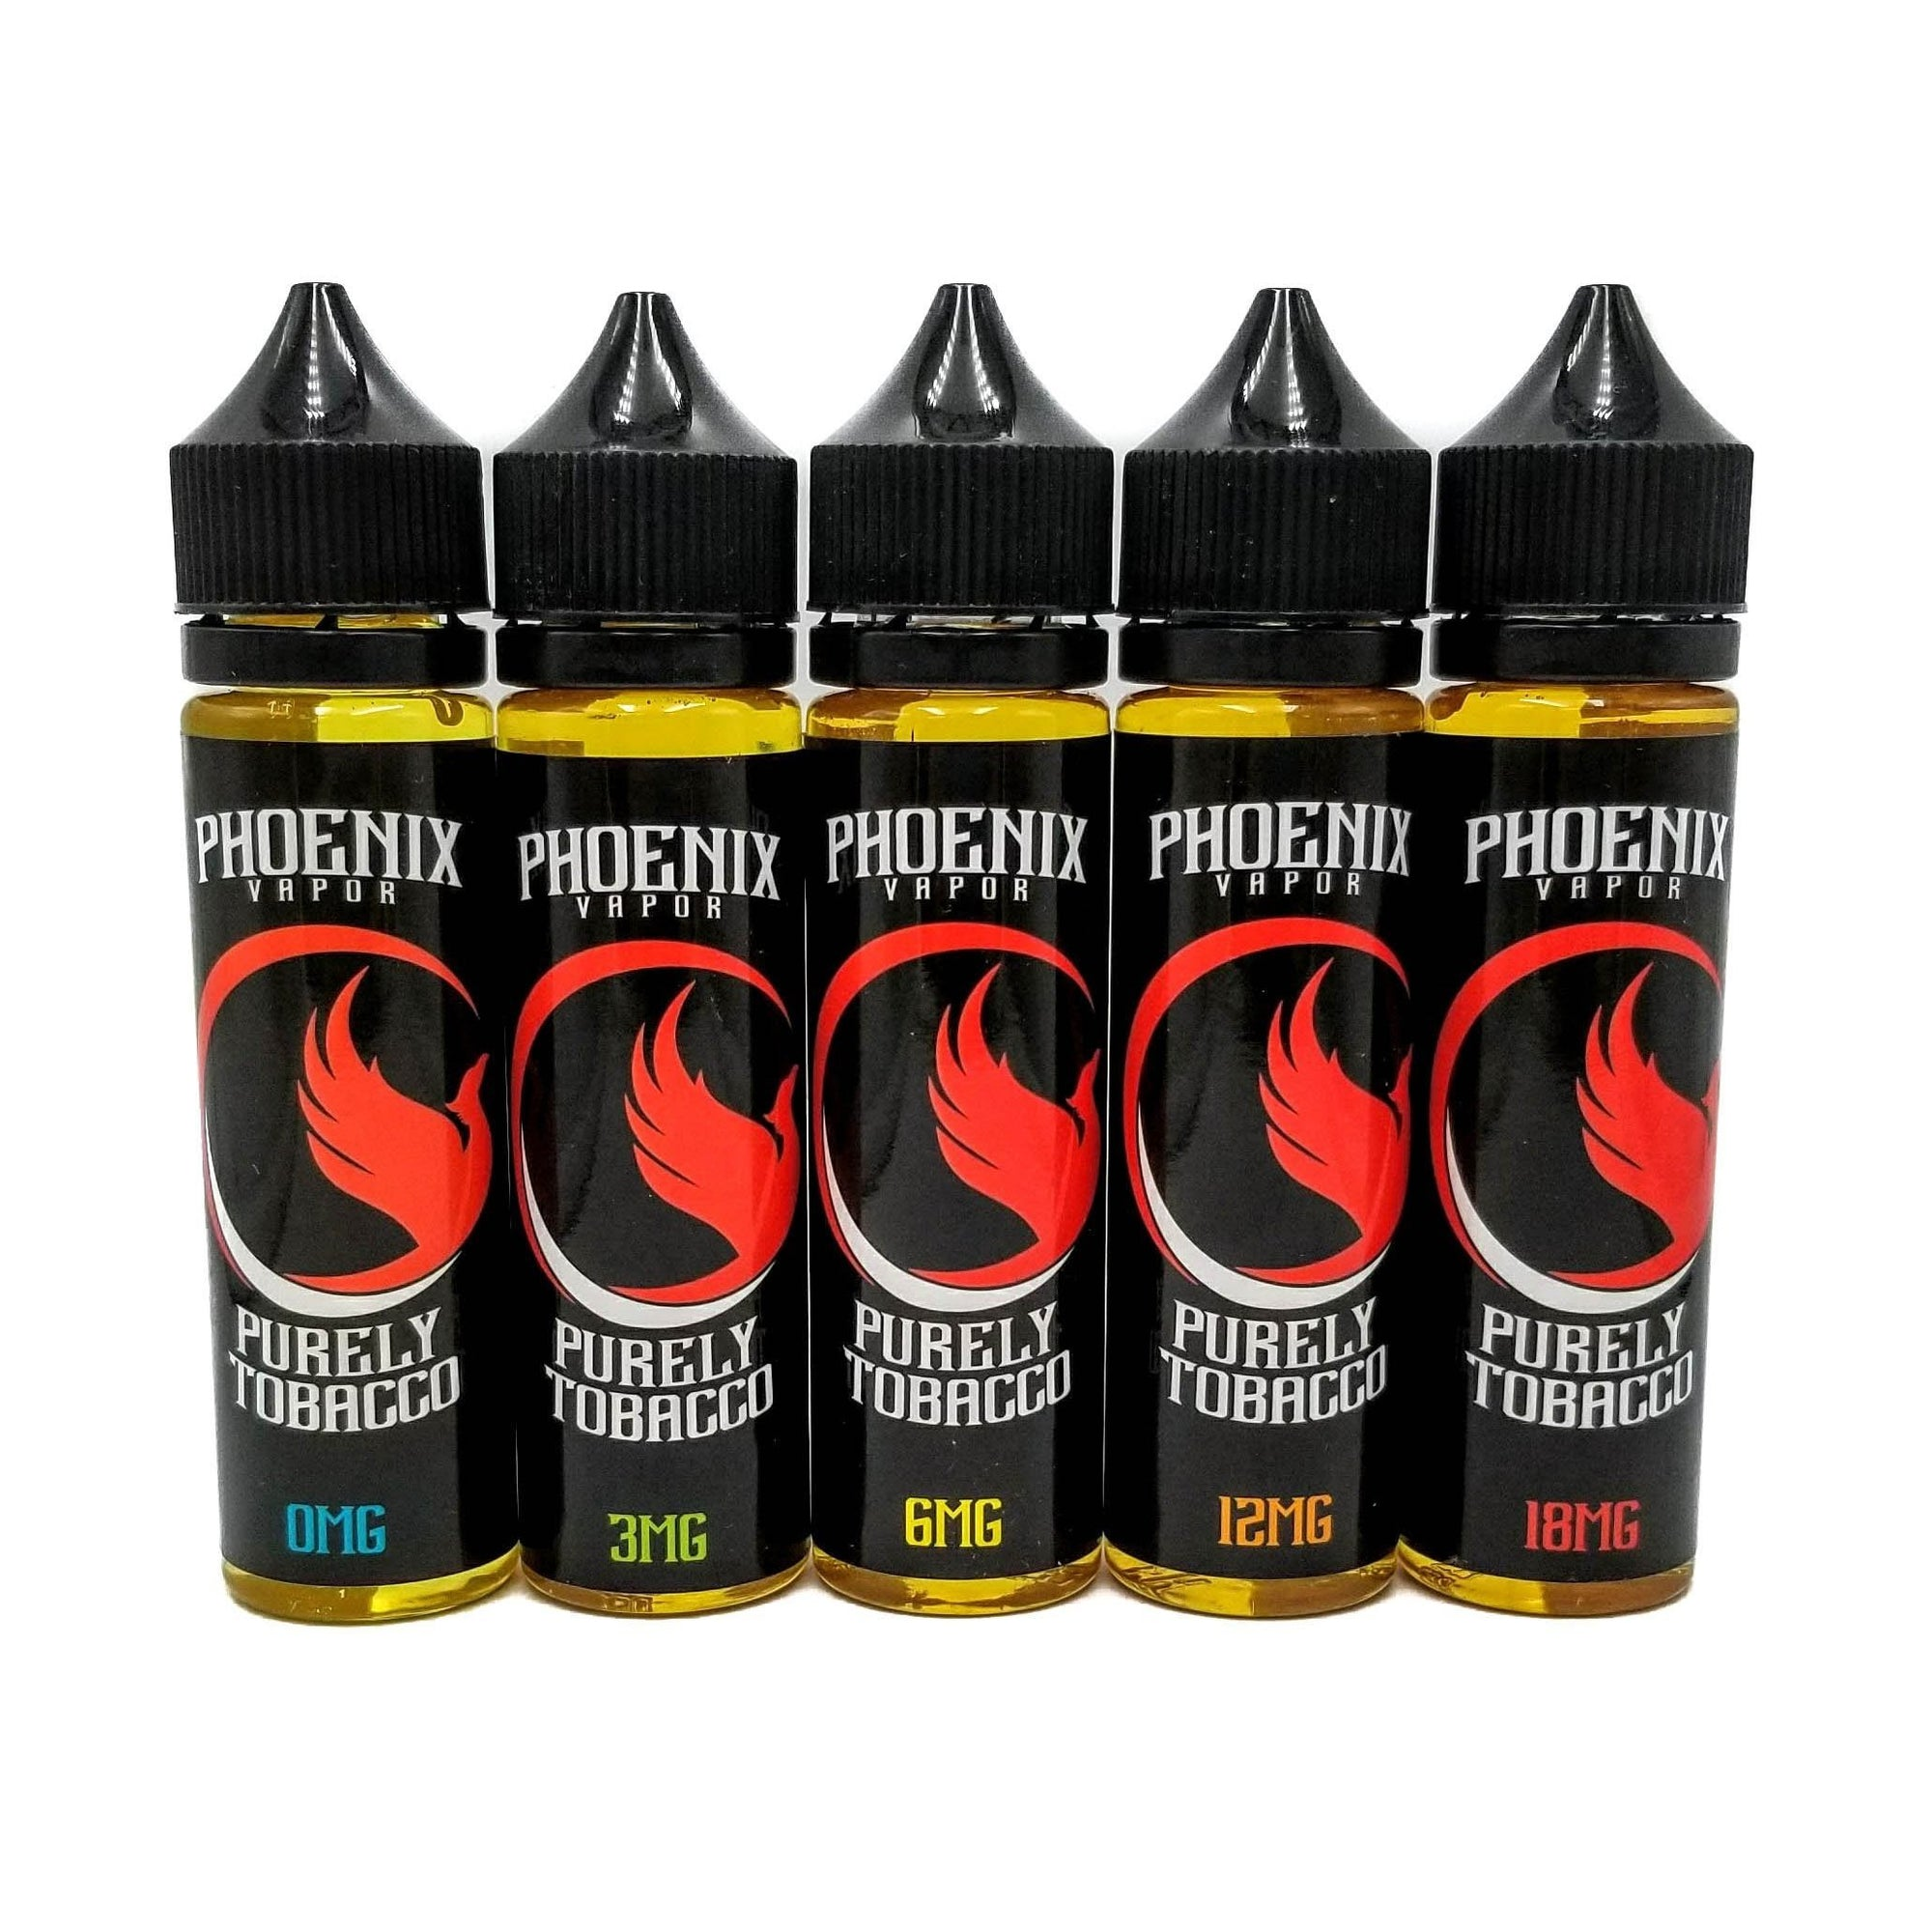 Phoenix Vapor E-Liquid E-Liquid 60 ml / 0 mg Purely Tobacco by Phoenix Vapor